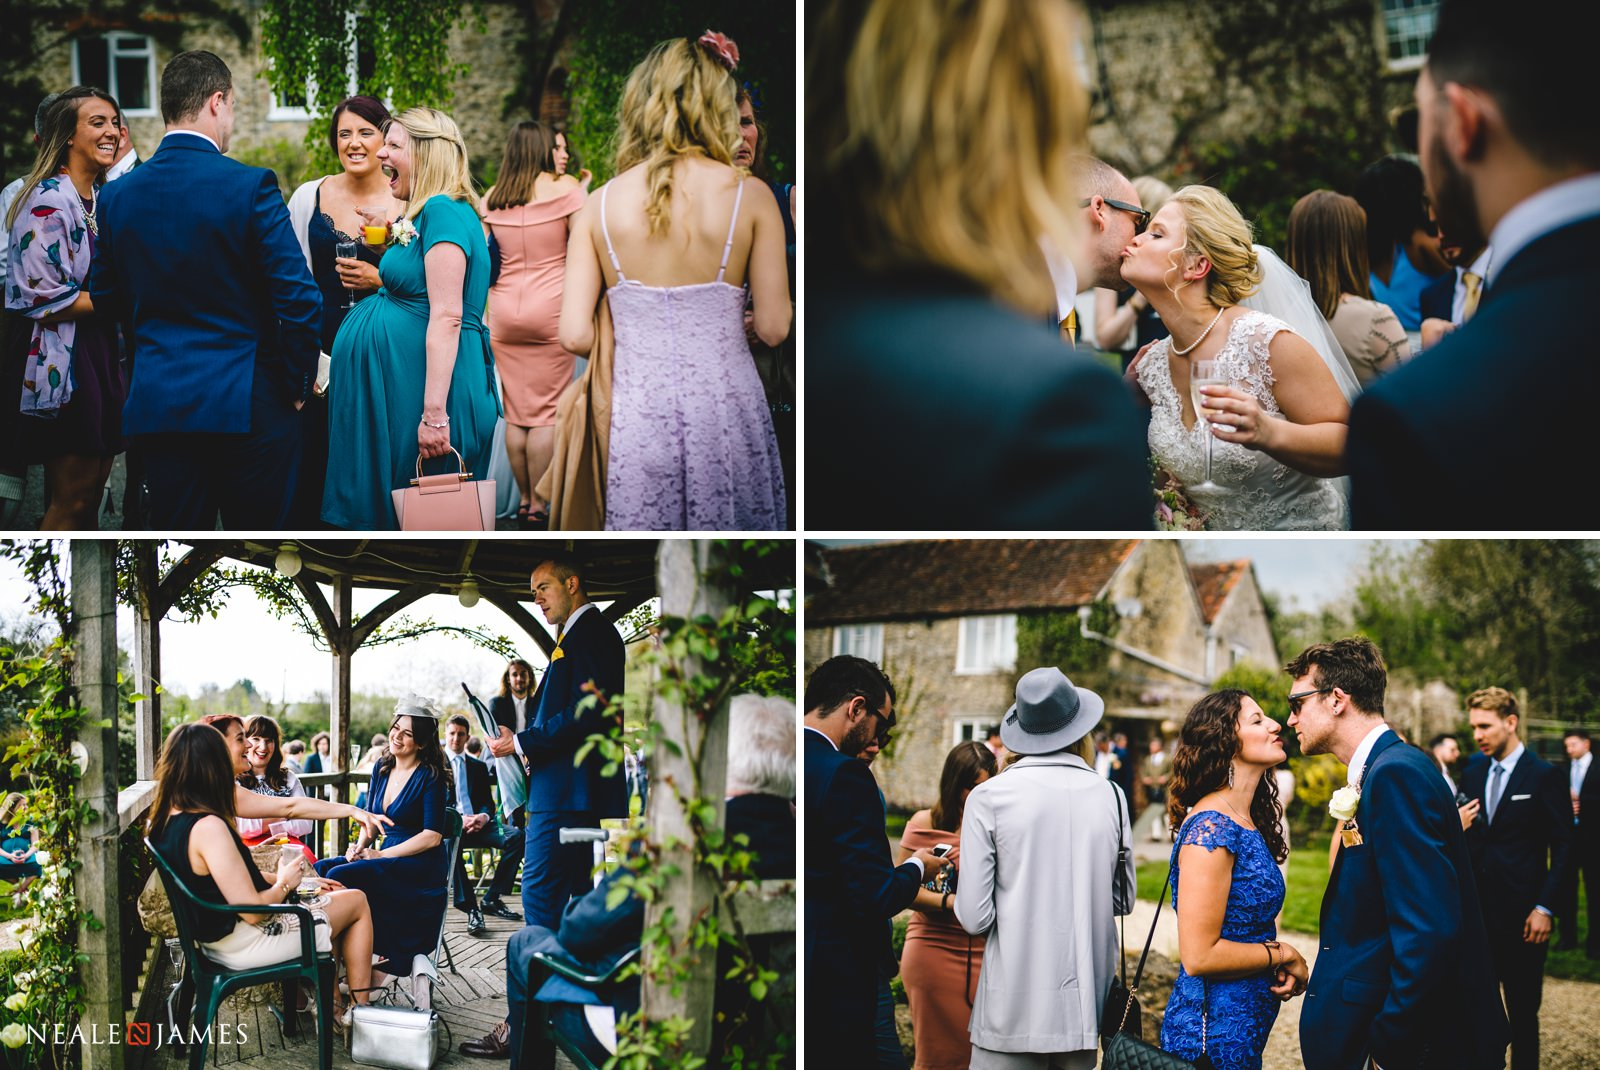 Family and friends enjoying themselves during an outdoor wedding reception at Gants Mill in Somerset